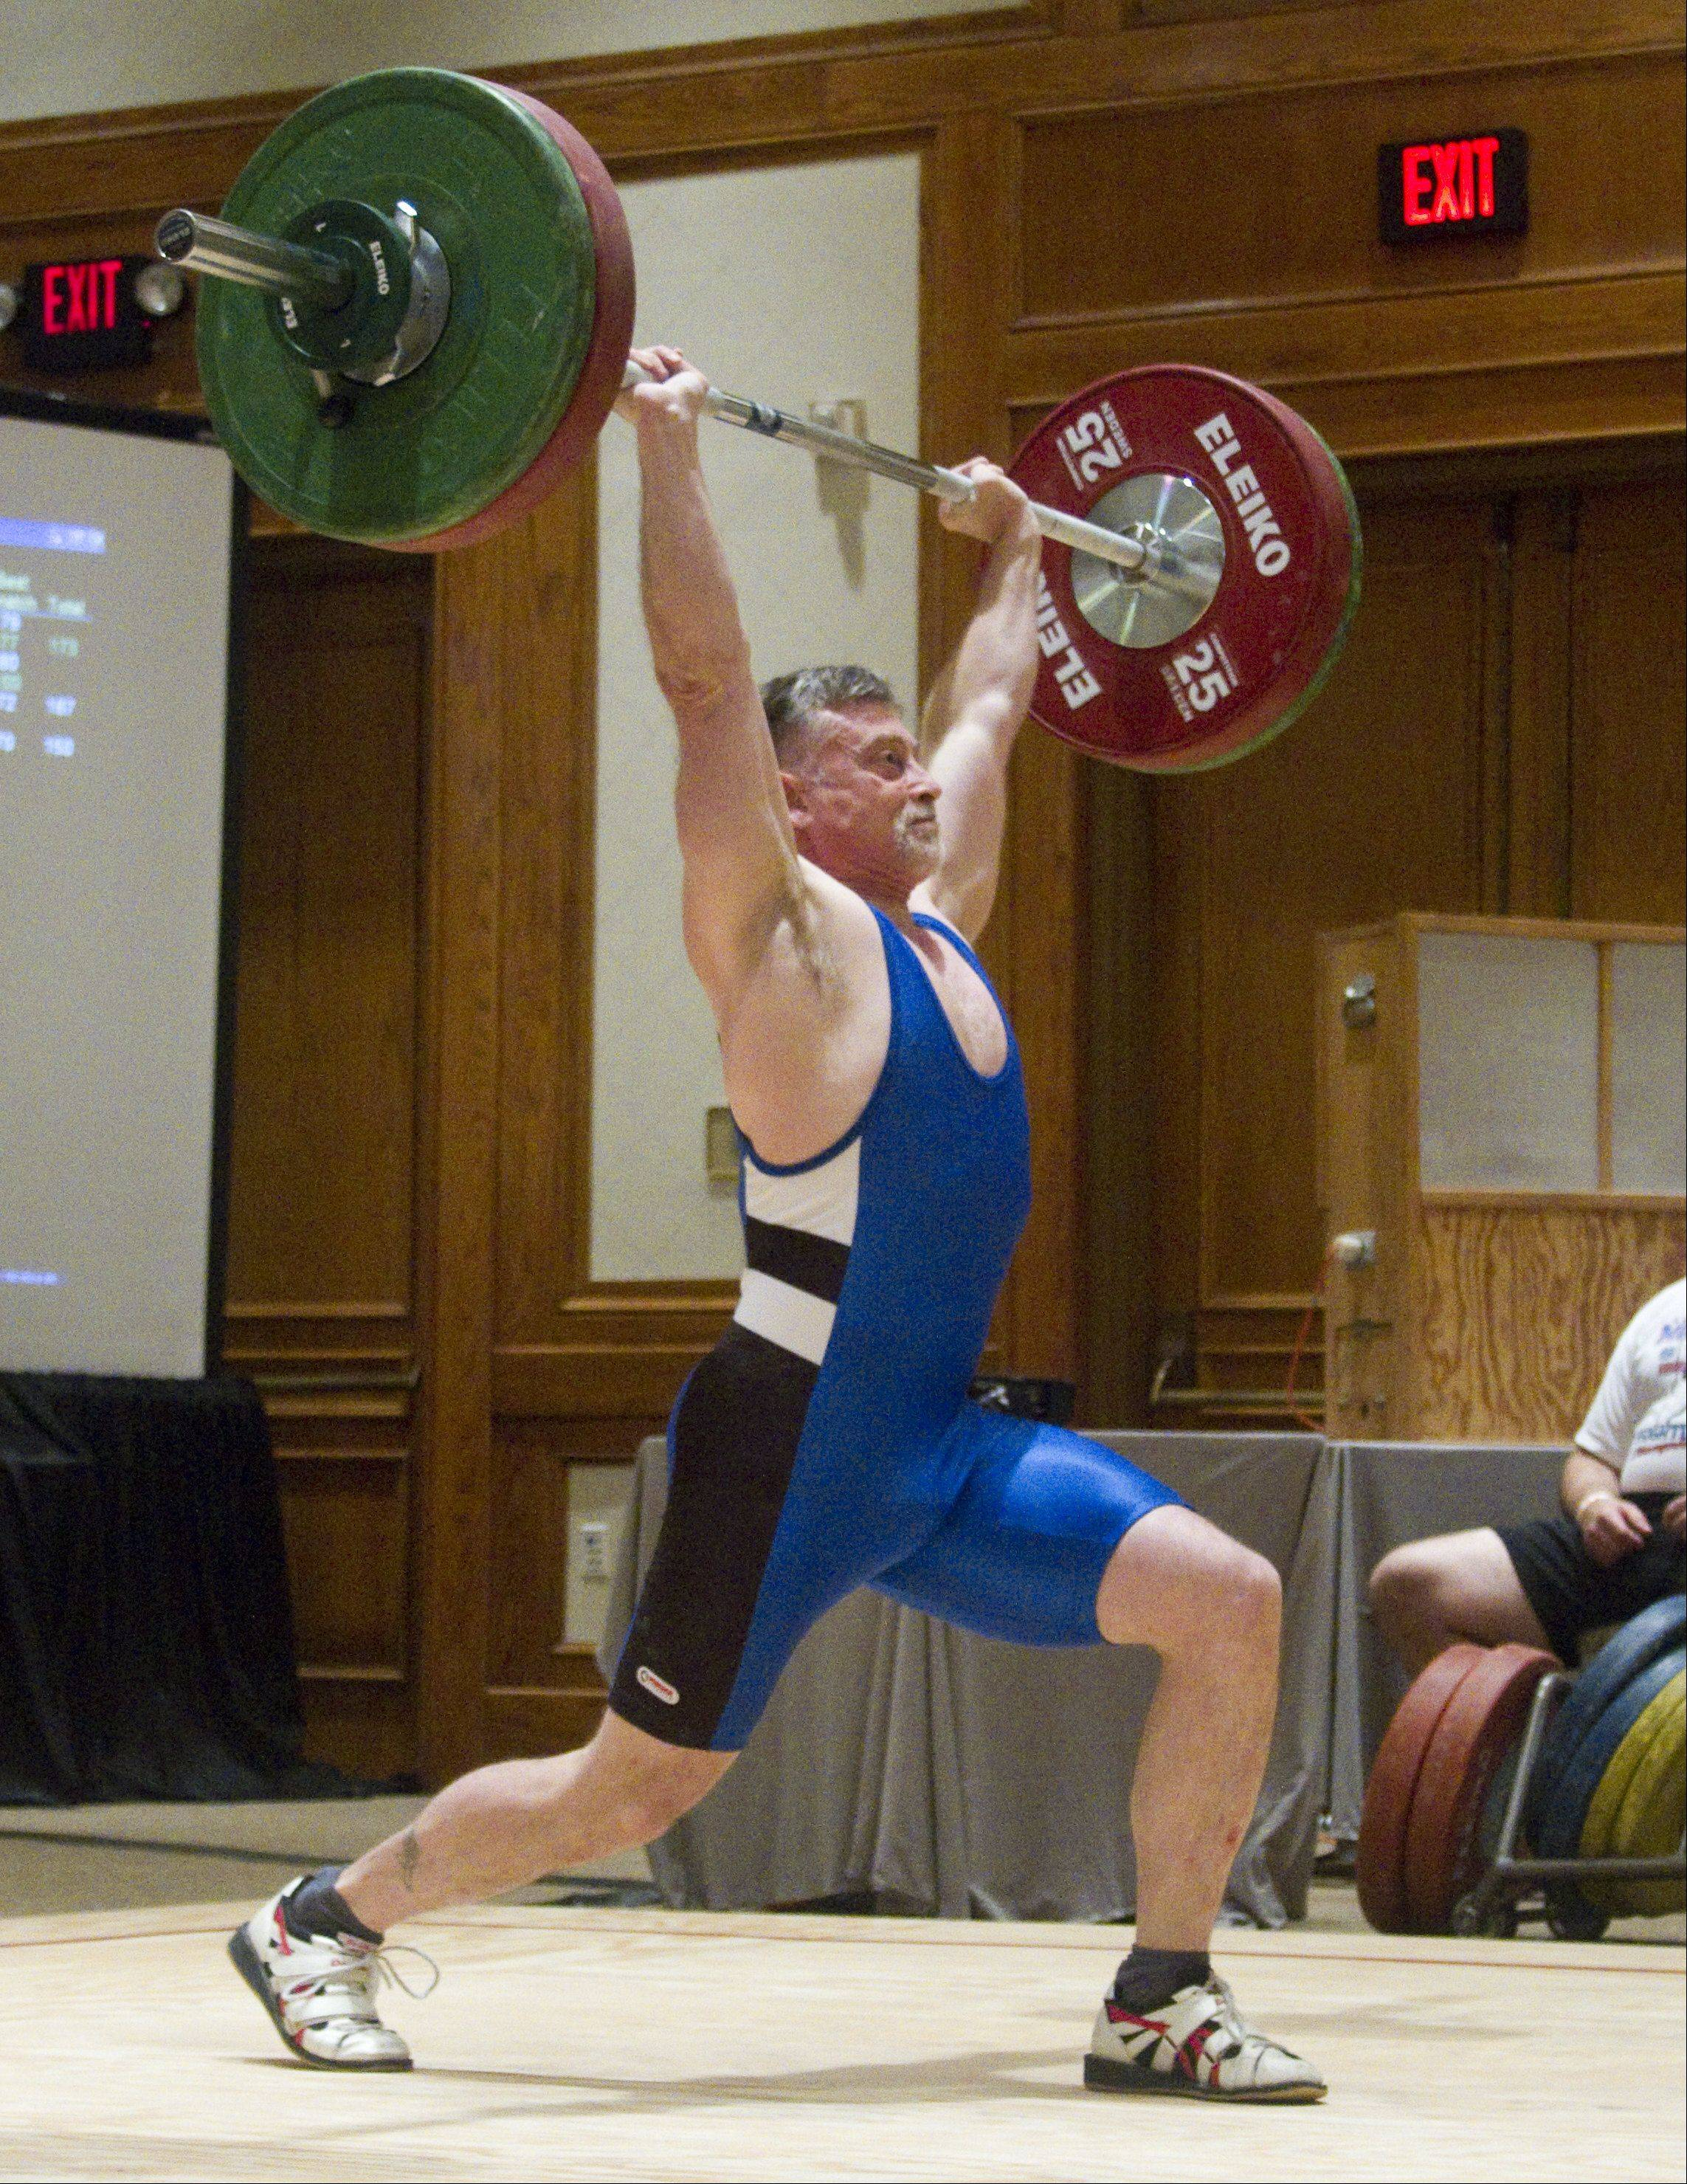 Richard Condon, a weightlifter representing the United States, attempts to lift 87 kilograms at the 2013 Pan American Masters Weightlifting Championships Sunday in Itasca.